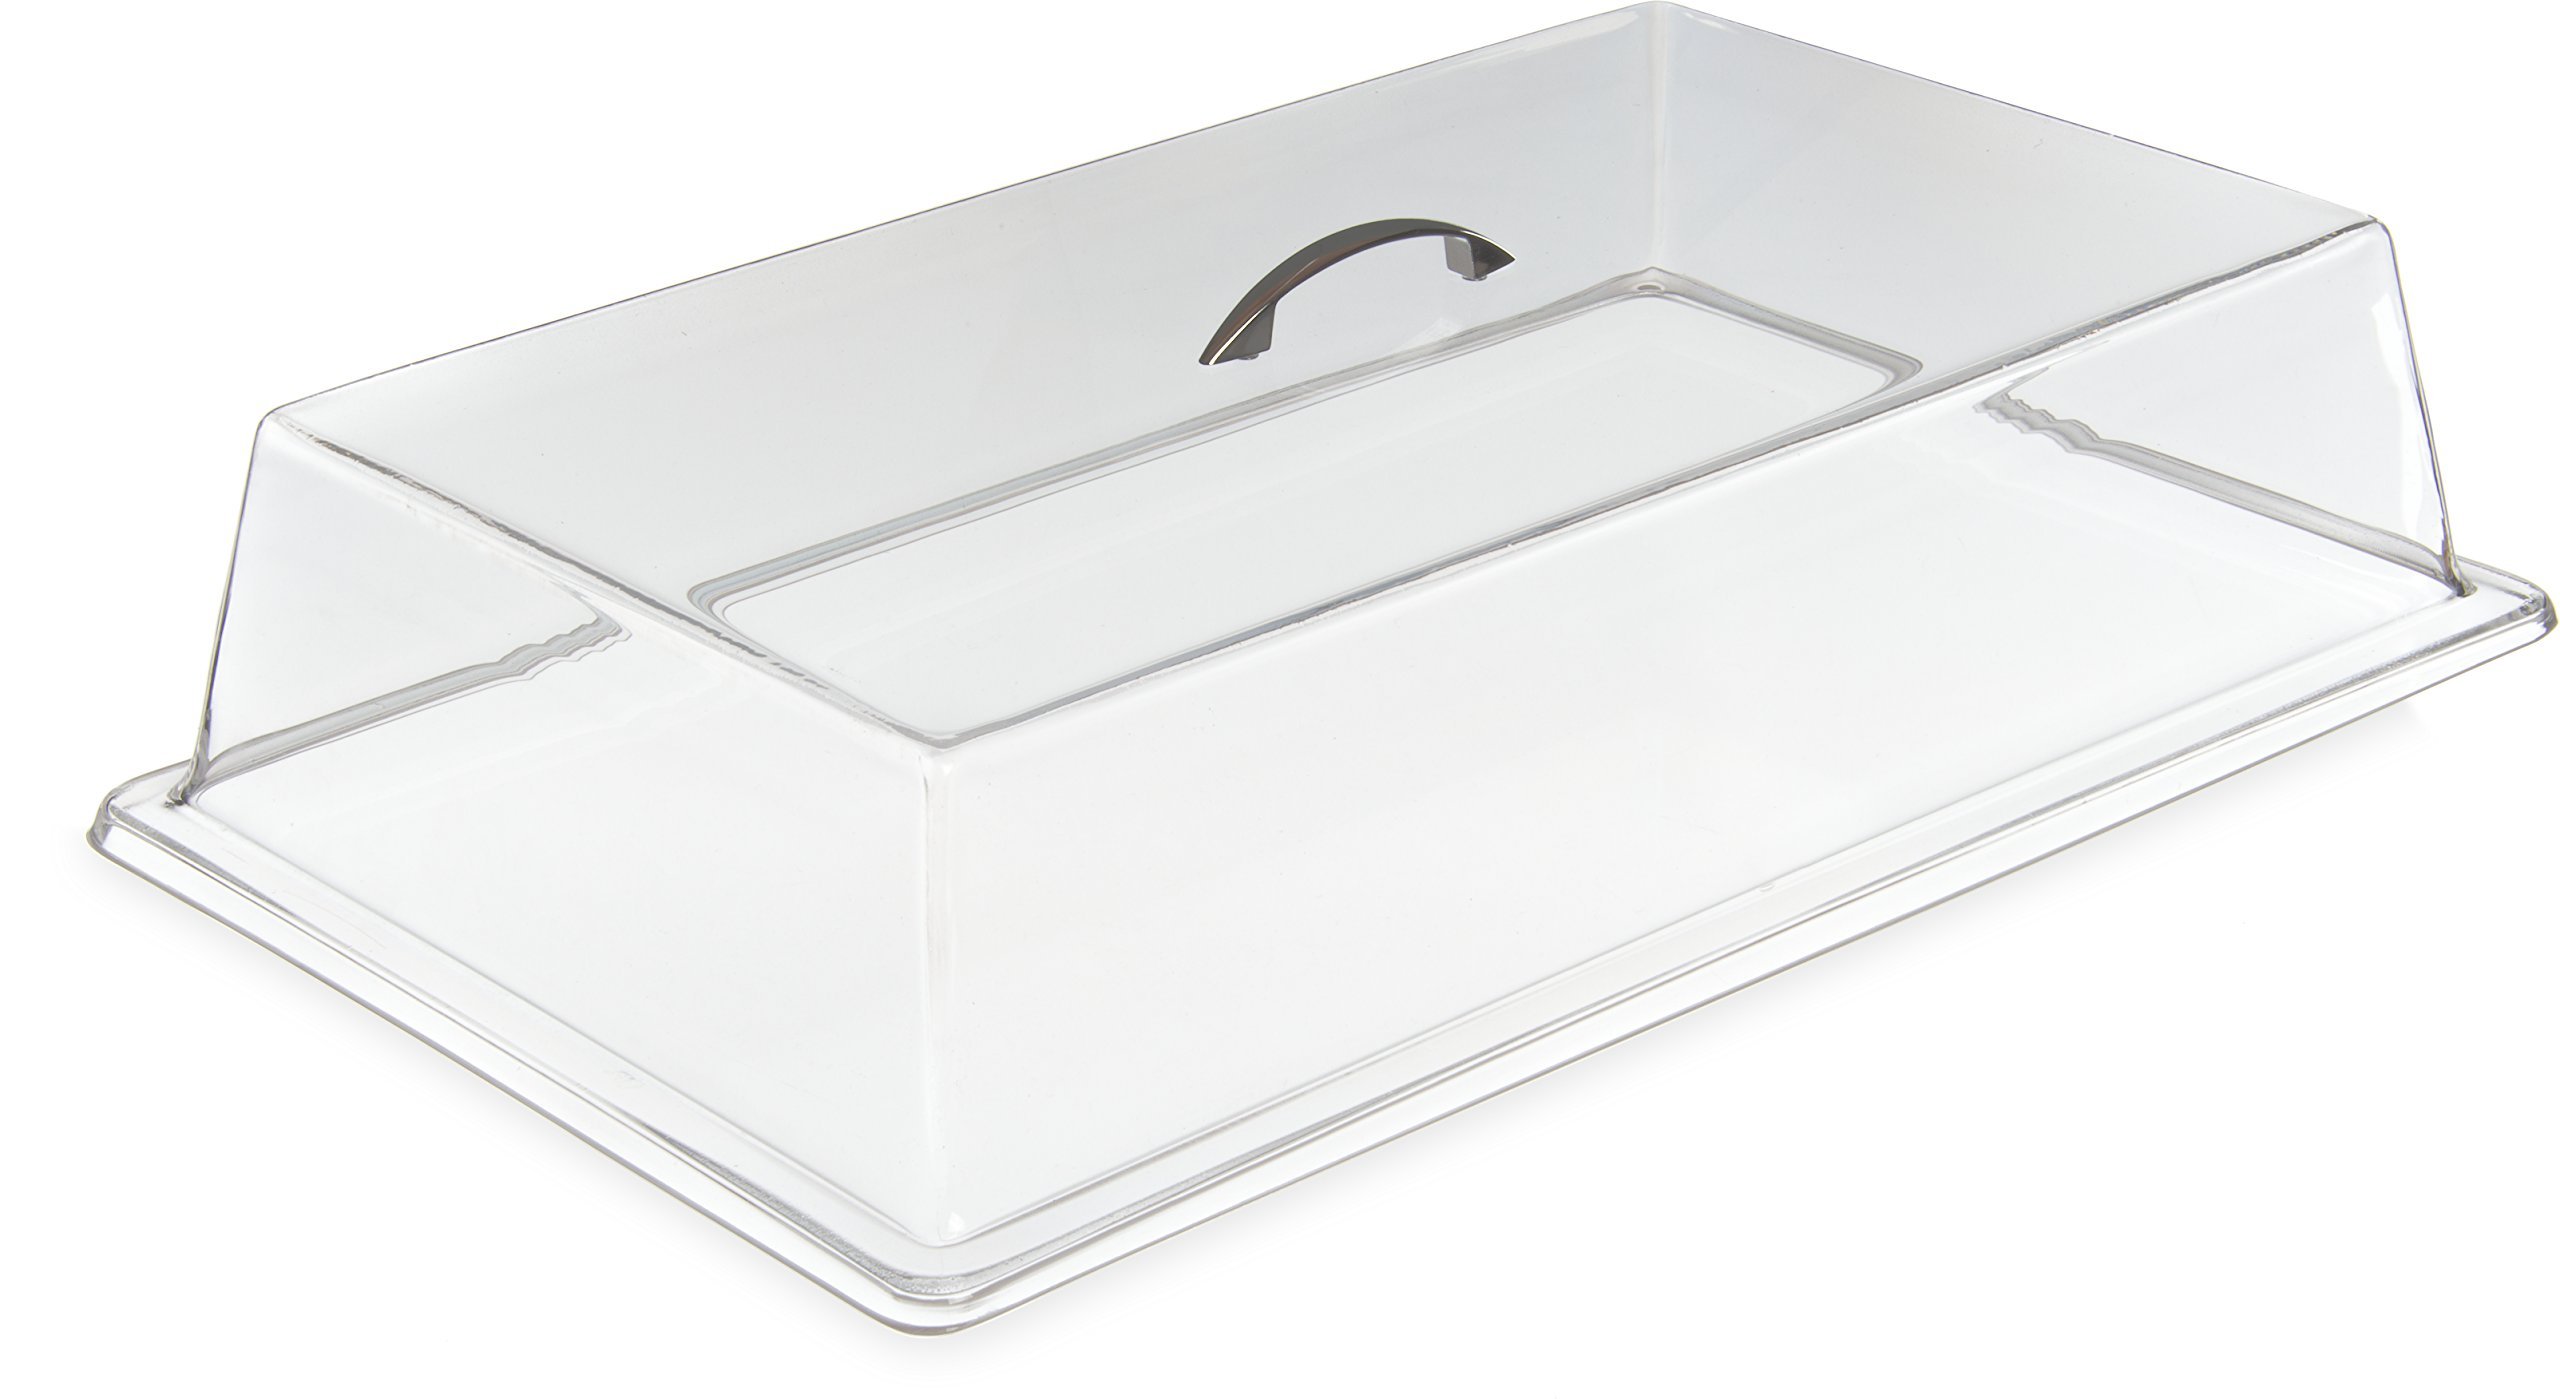 Carlisle SC2707 Acrylic Cafeteria Pan Cover, 4.25'' x 11.37'' x 19.31'', Clear (Case of 3)